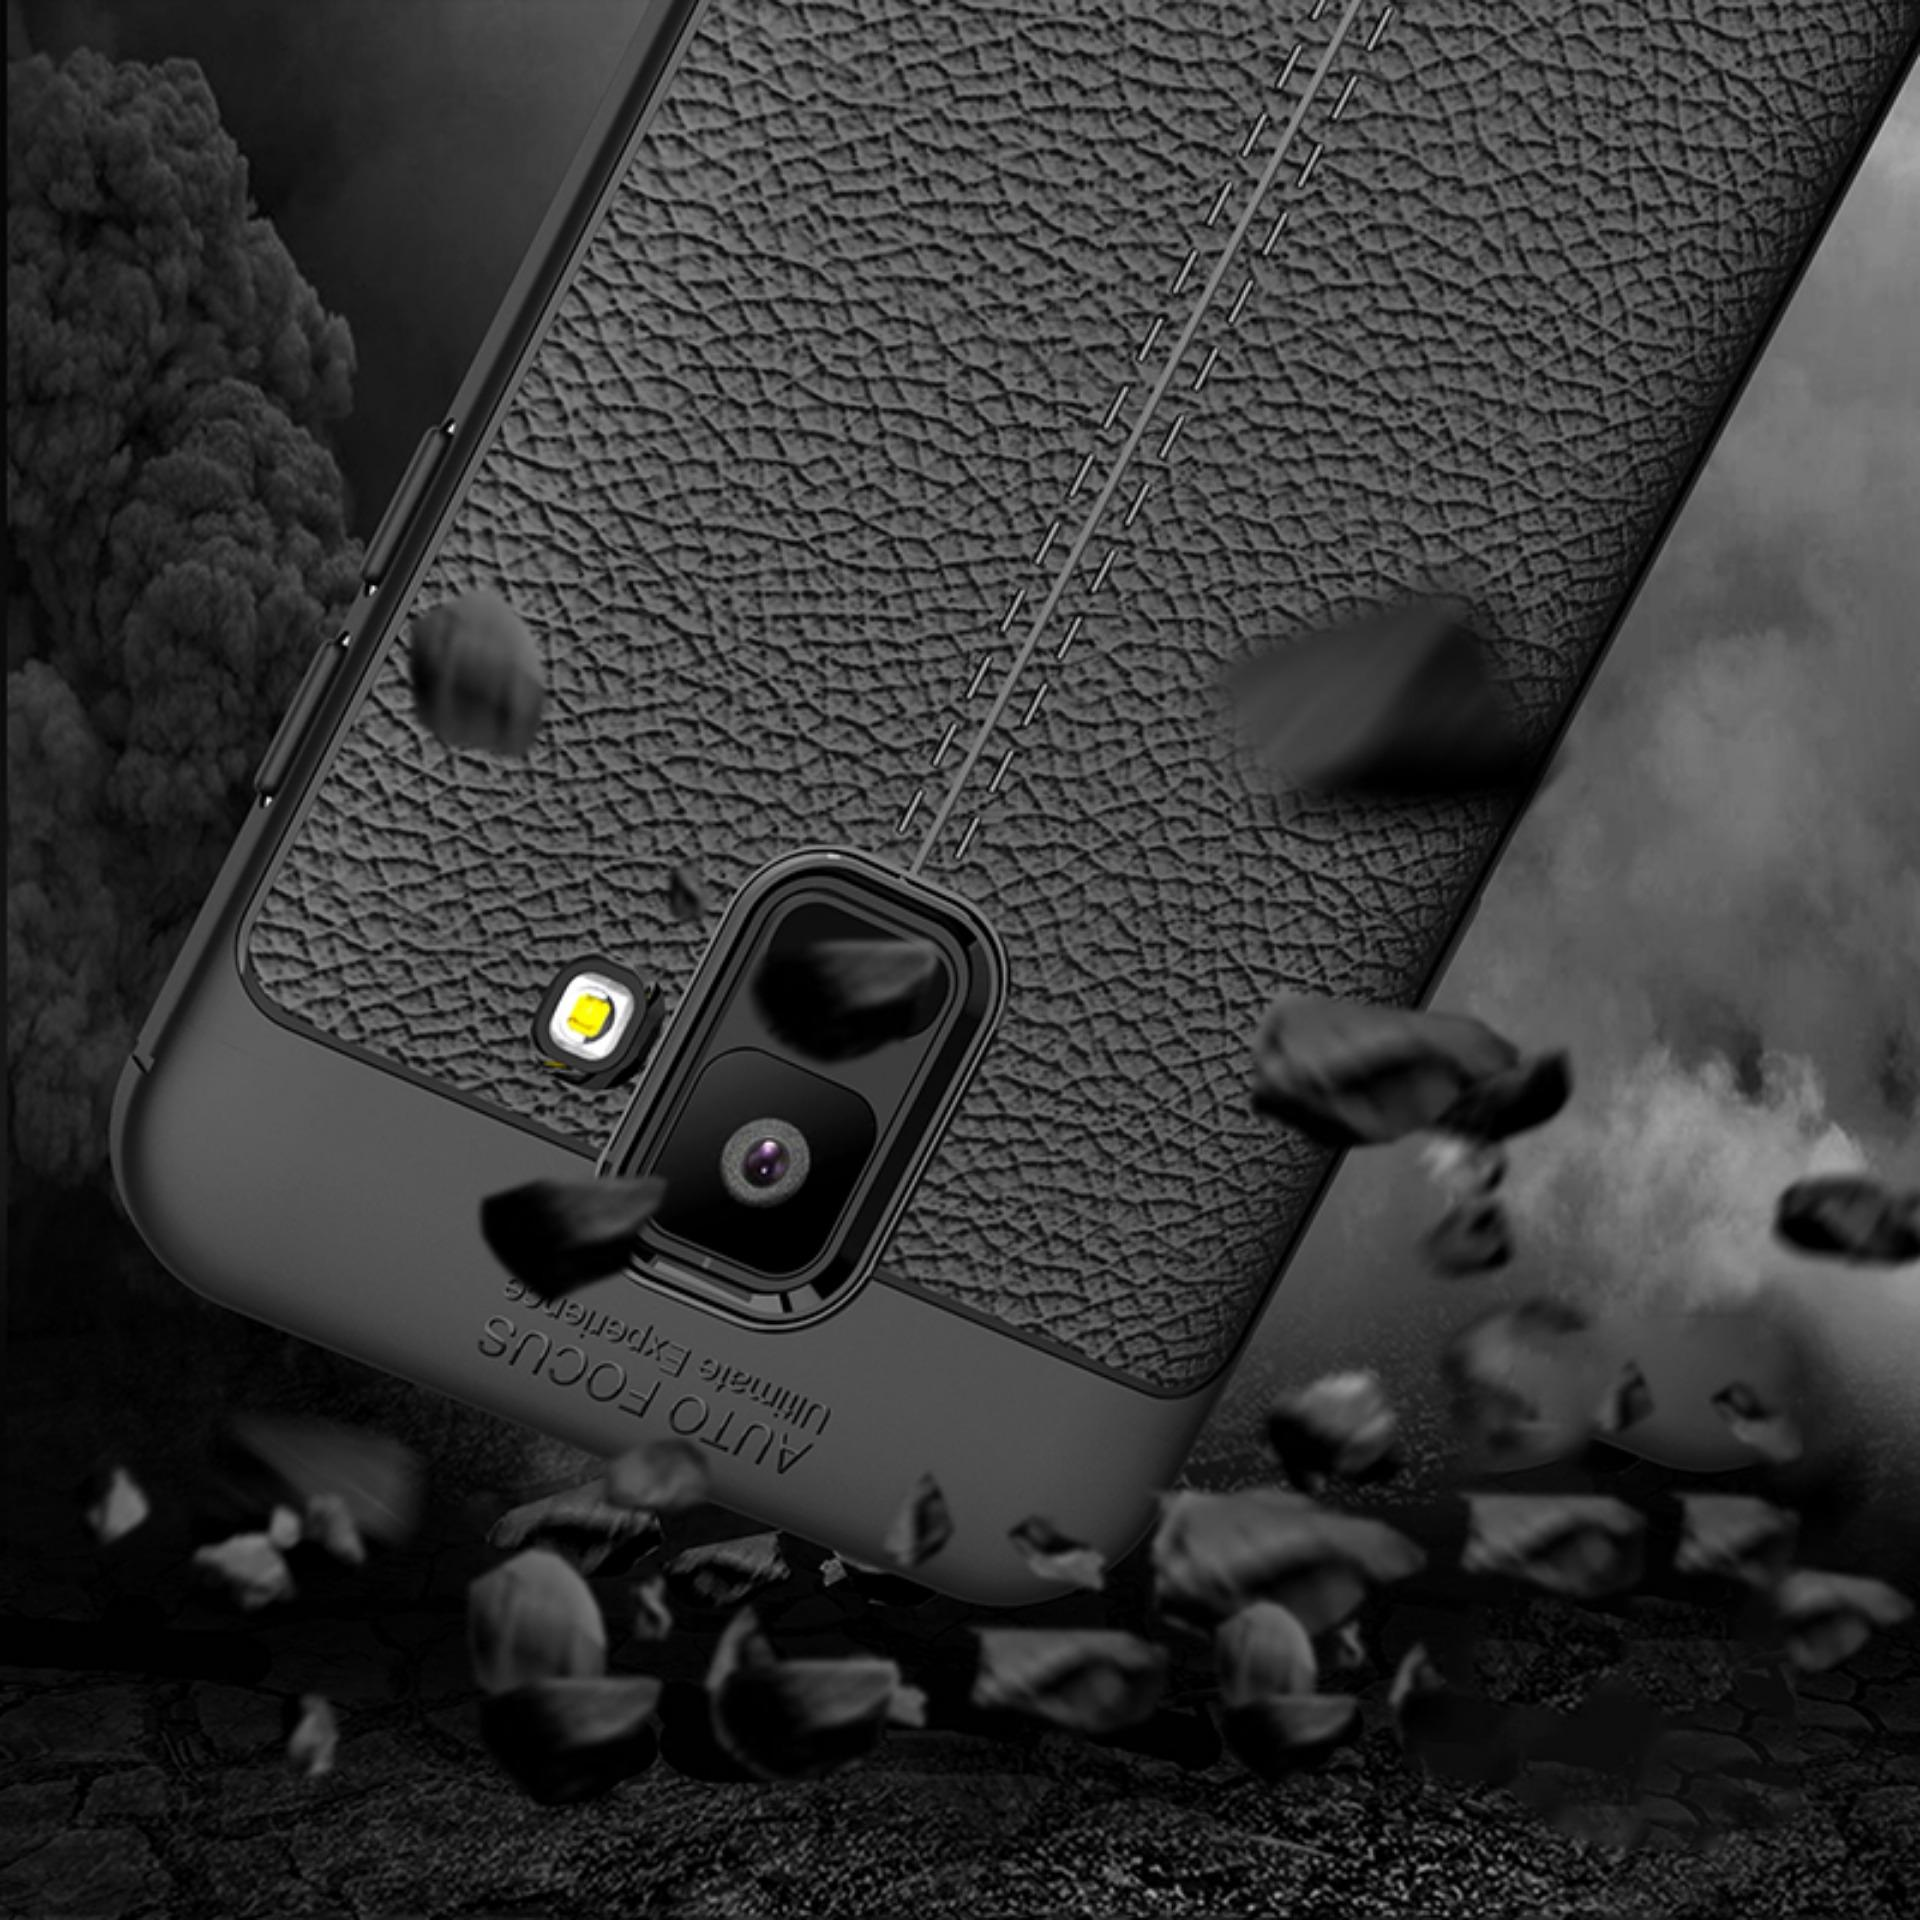 ... Accessories Hp Premium Ultimate Shockproof Leather Case For Samsung Galaxy A6 2018 - Black - 3 ...